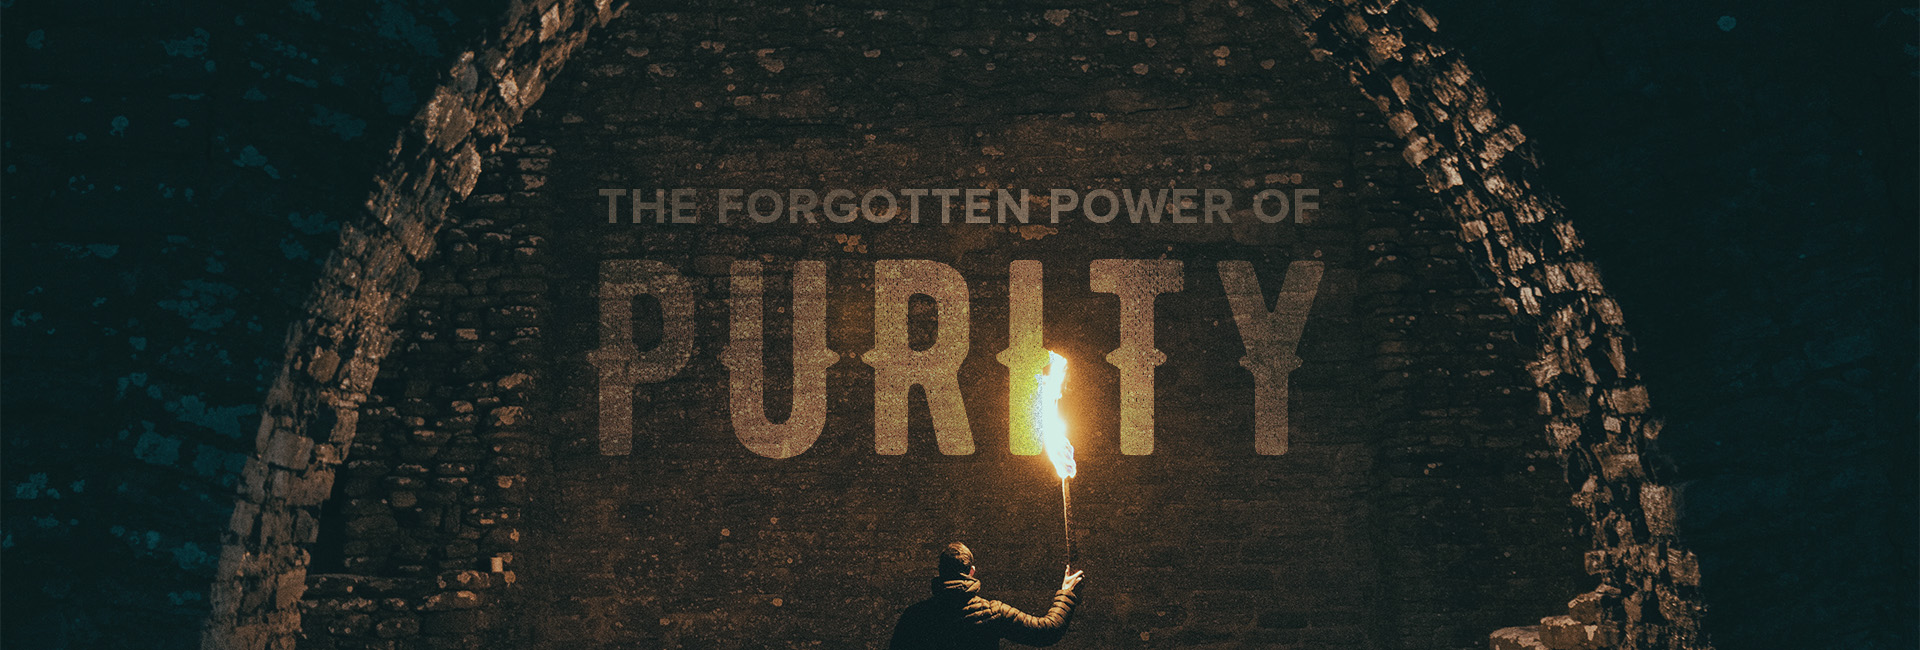 The Forgotten Power of Purity